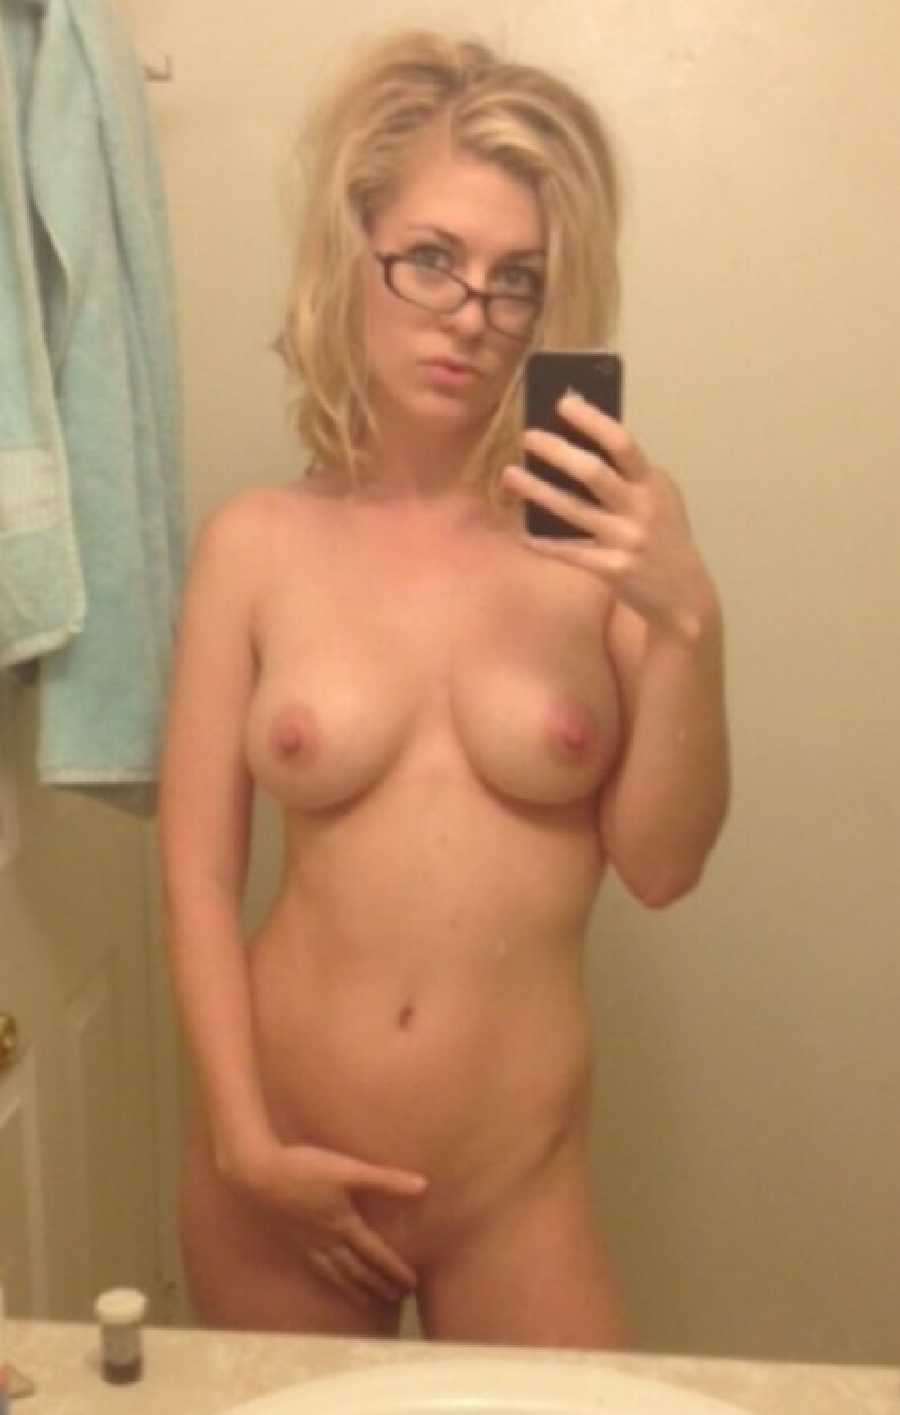 Real porn naked teacher photos